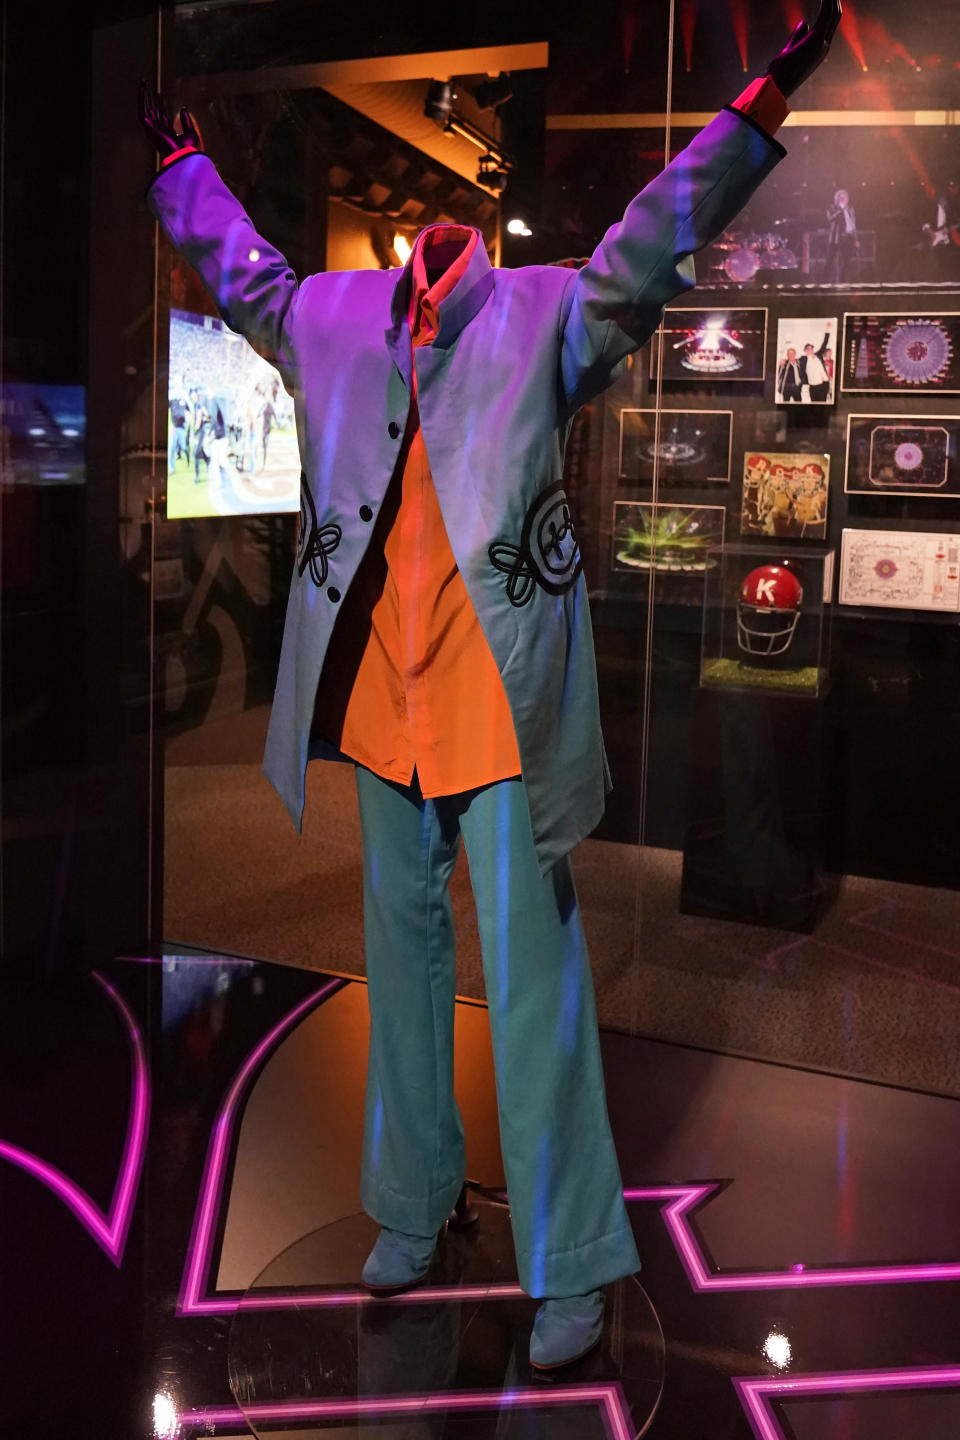 Prince's 2007 half-time outfit he wore in Super Bowl's XLI in Miami, Fla. is on display Thursday, April 29, 2021 at the Rock and Roll Hall of Fame in Cleveland. Rock Hall's NFL Halftime Show Exhibit with 55 Years Of NFL Halftime Shows, runs from April to September. (AP Photo/Tony Dejak)